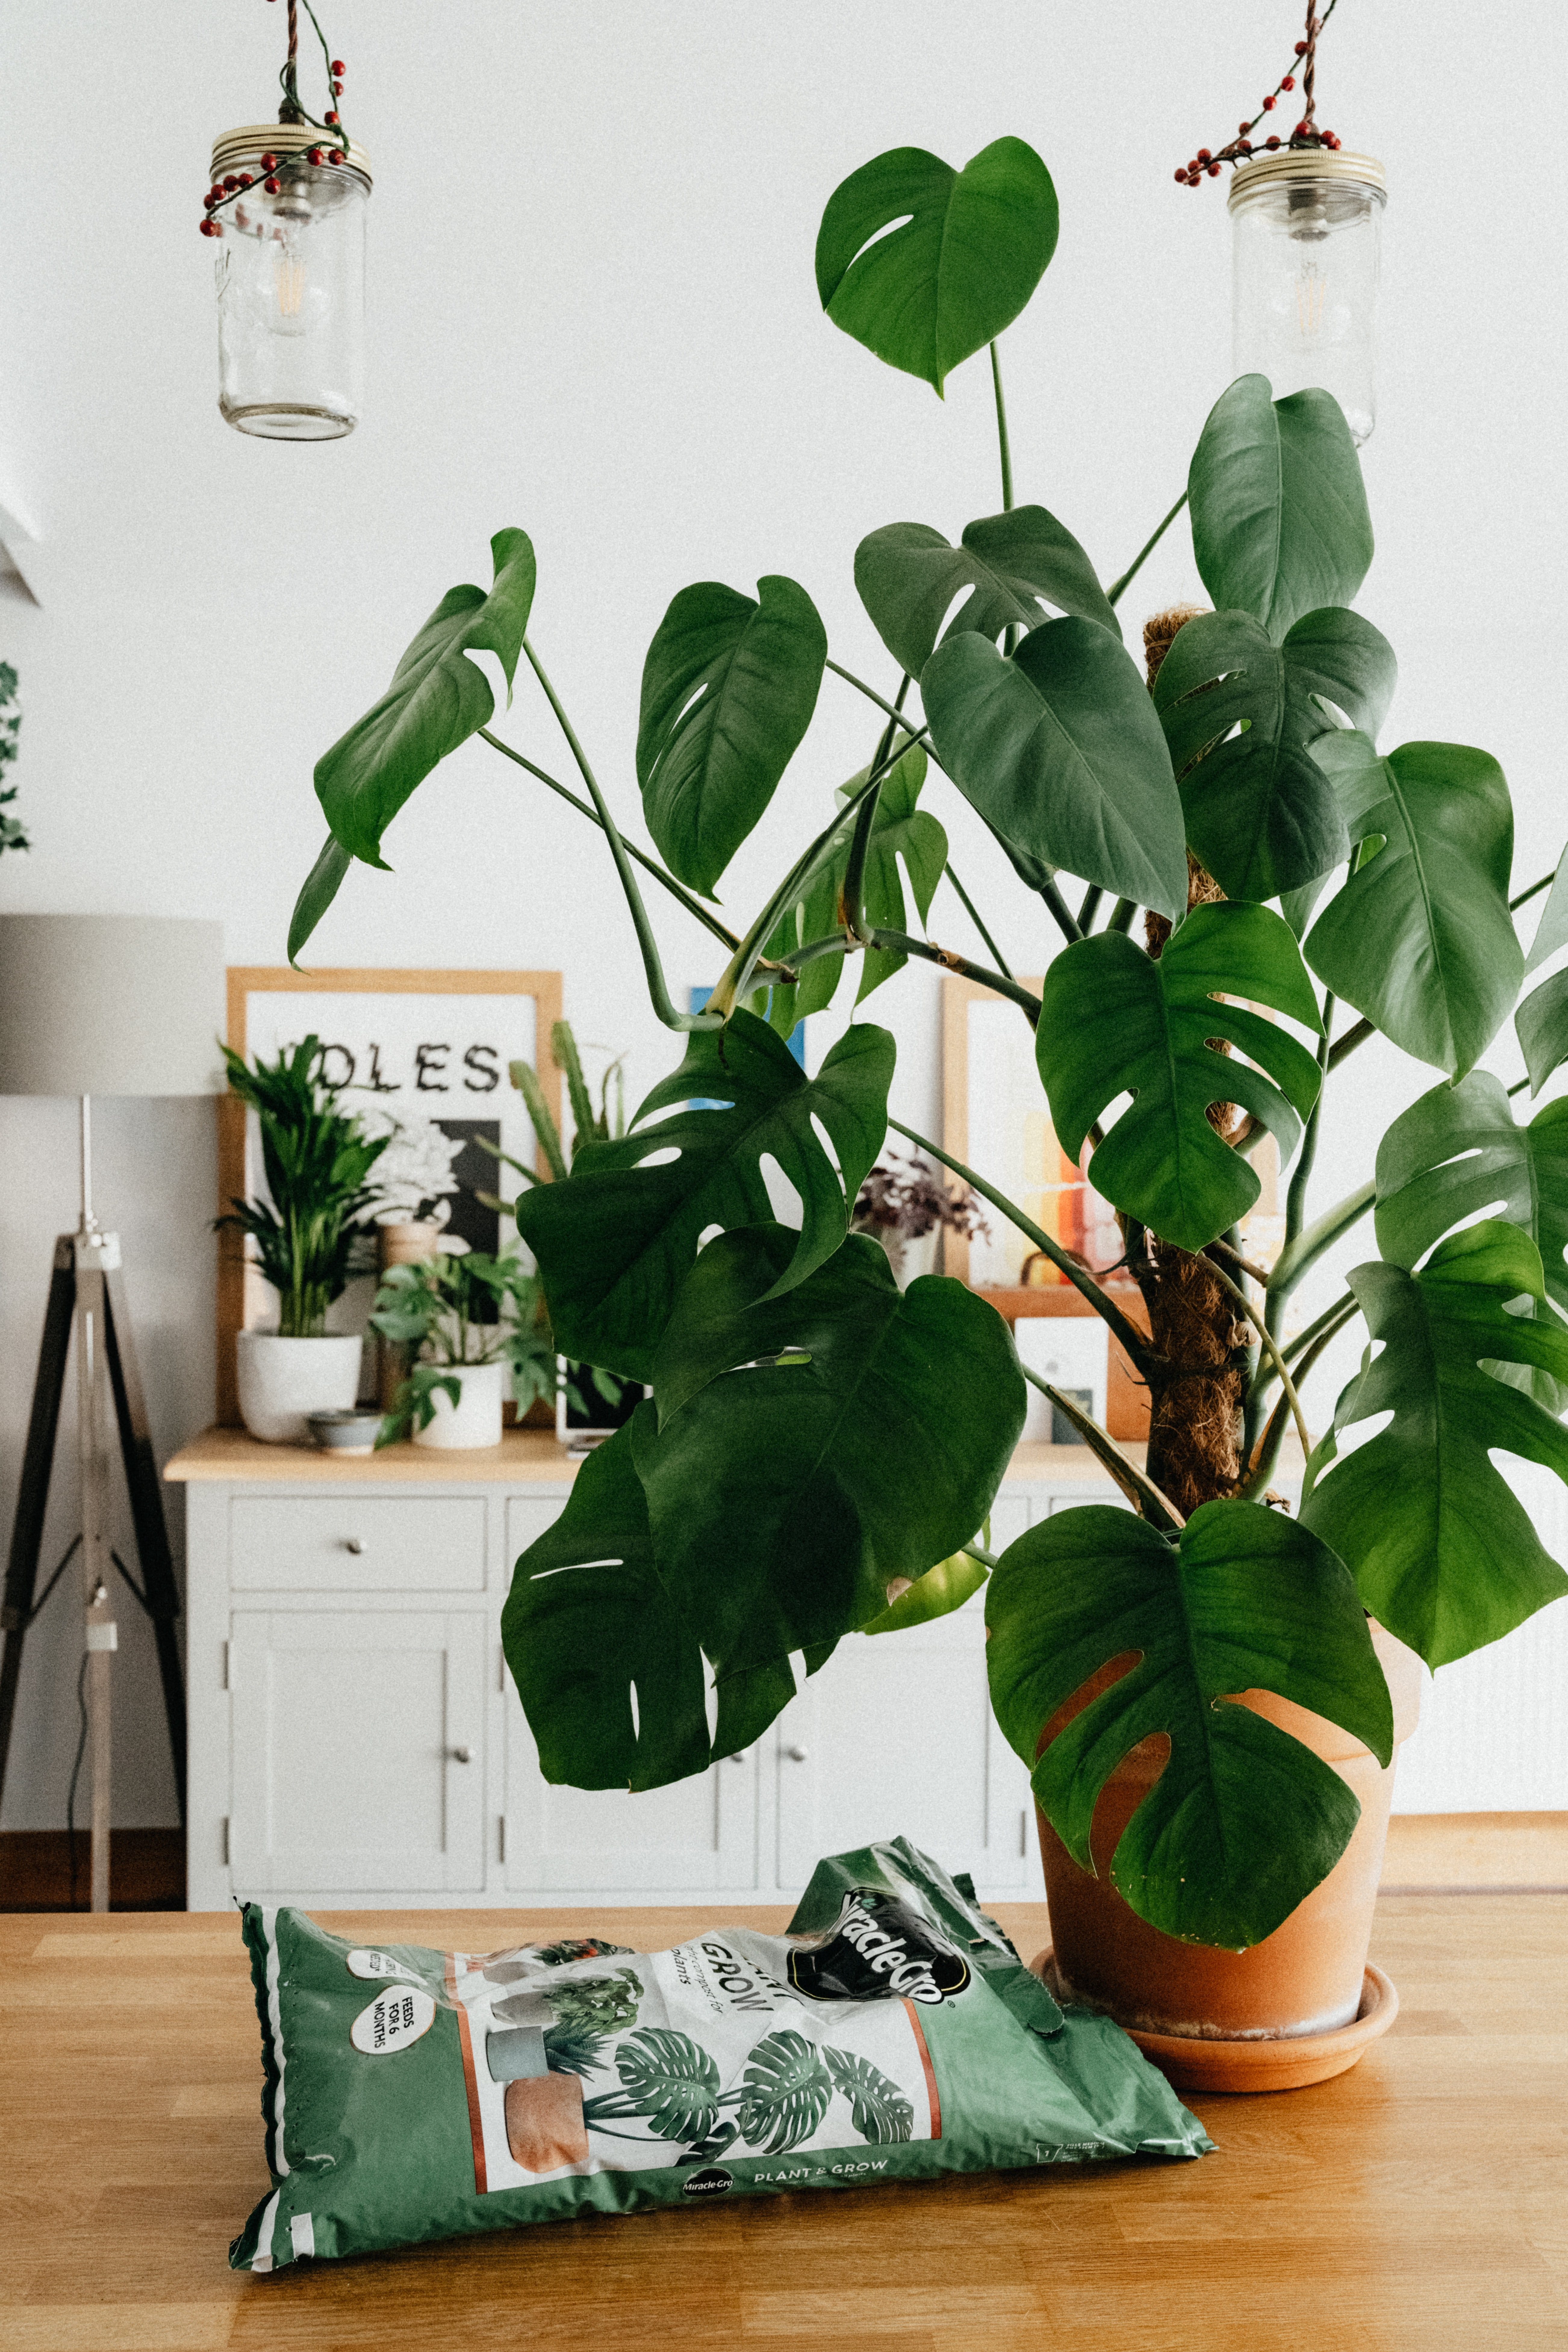 8 Eco-Friendy Mother's Day Gift Ideas for Mom and Mother Earth